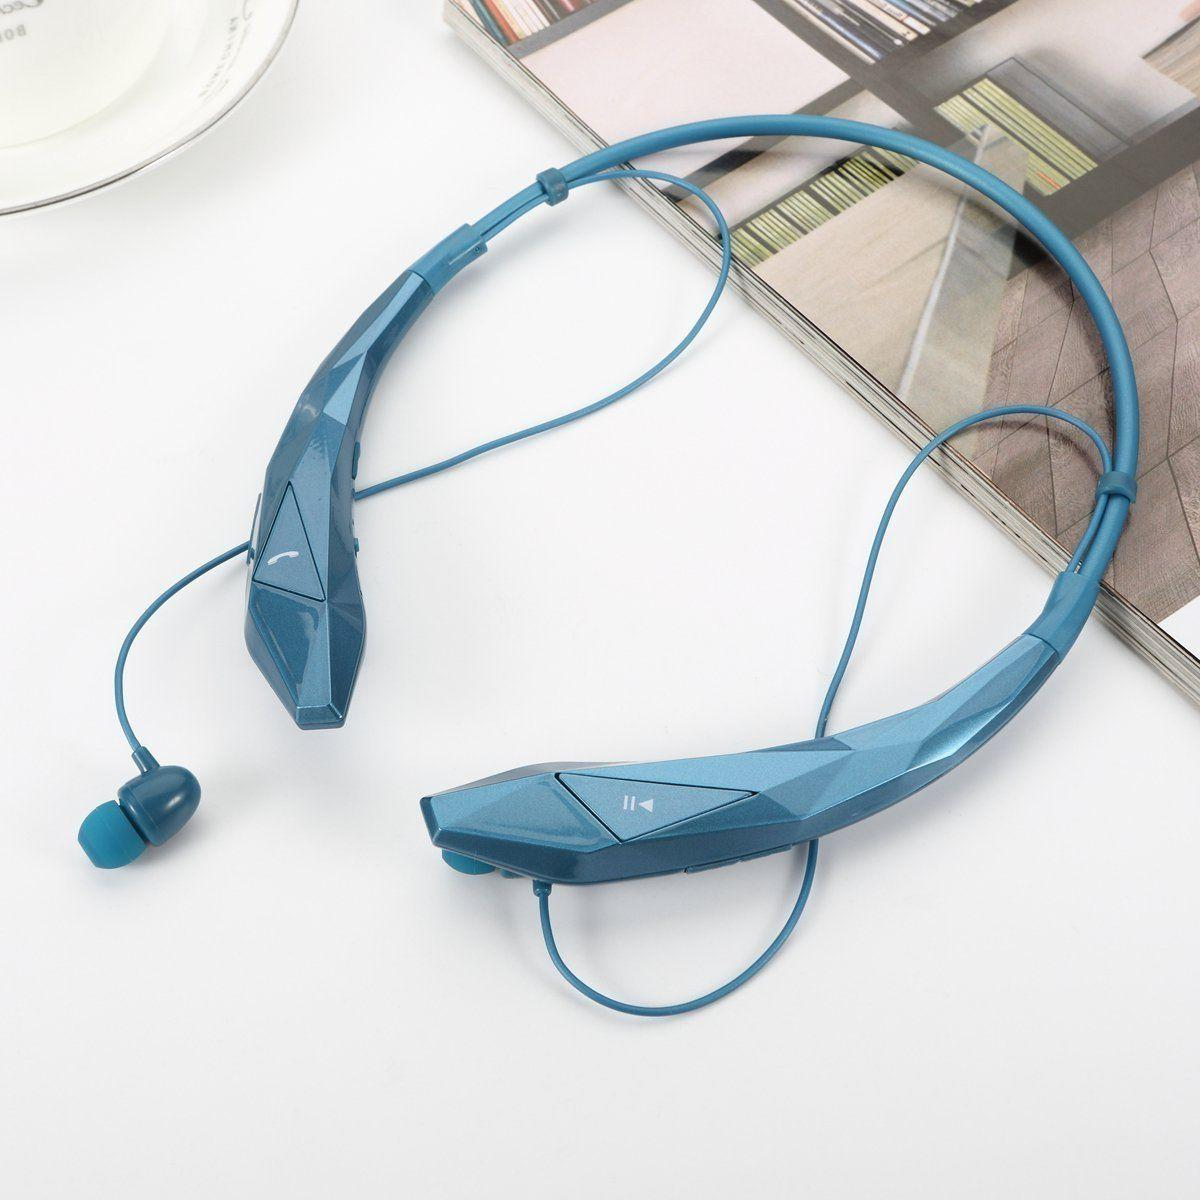 Bluetooth Stereo Earbuds Universal